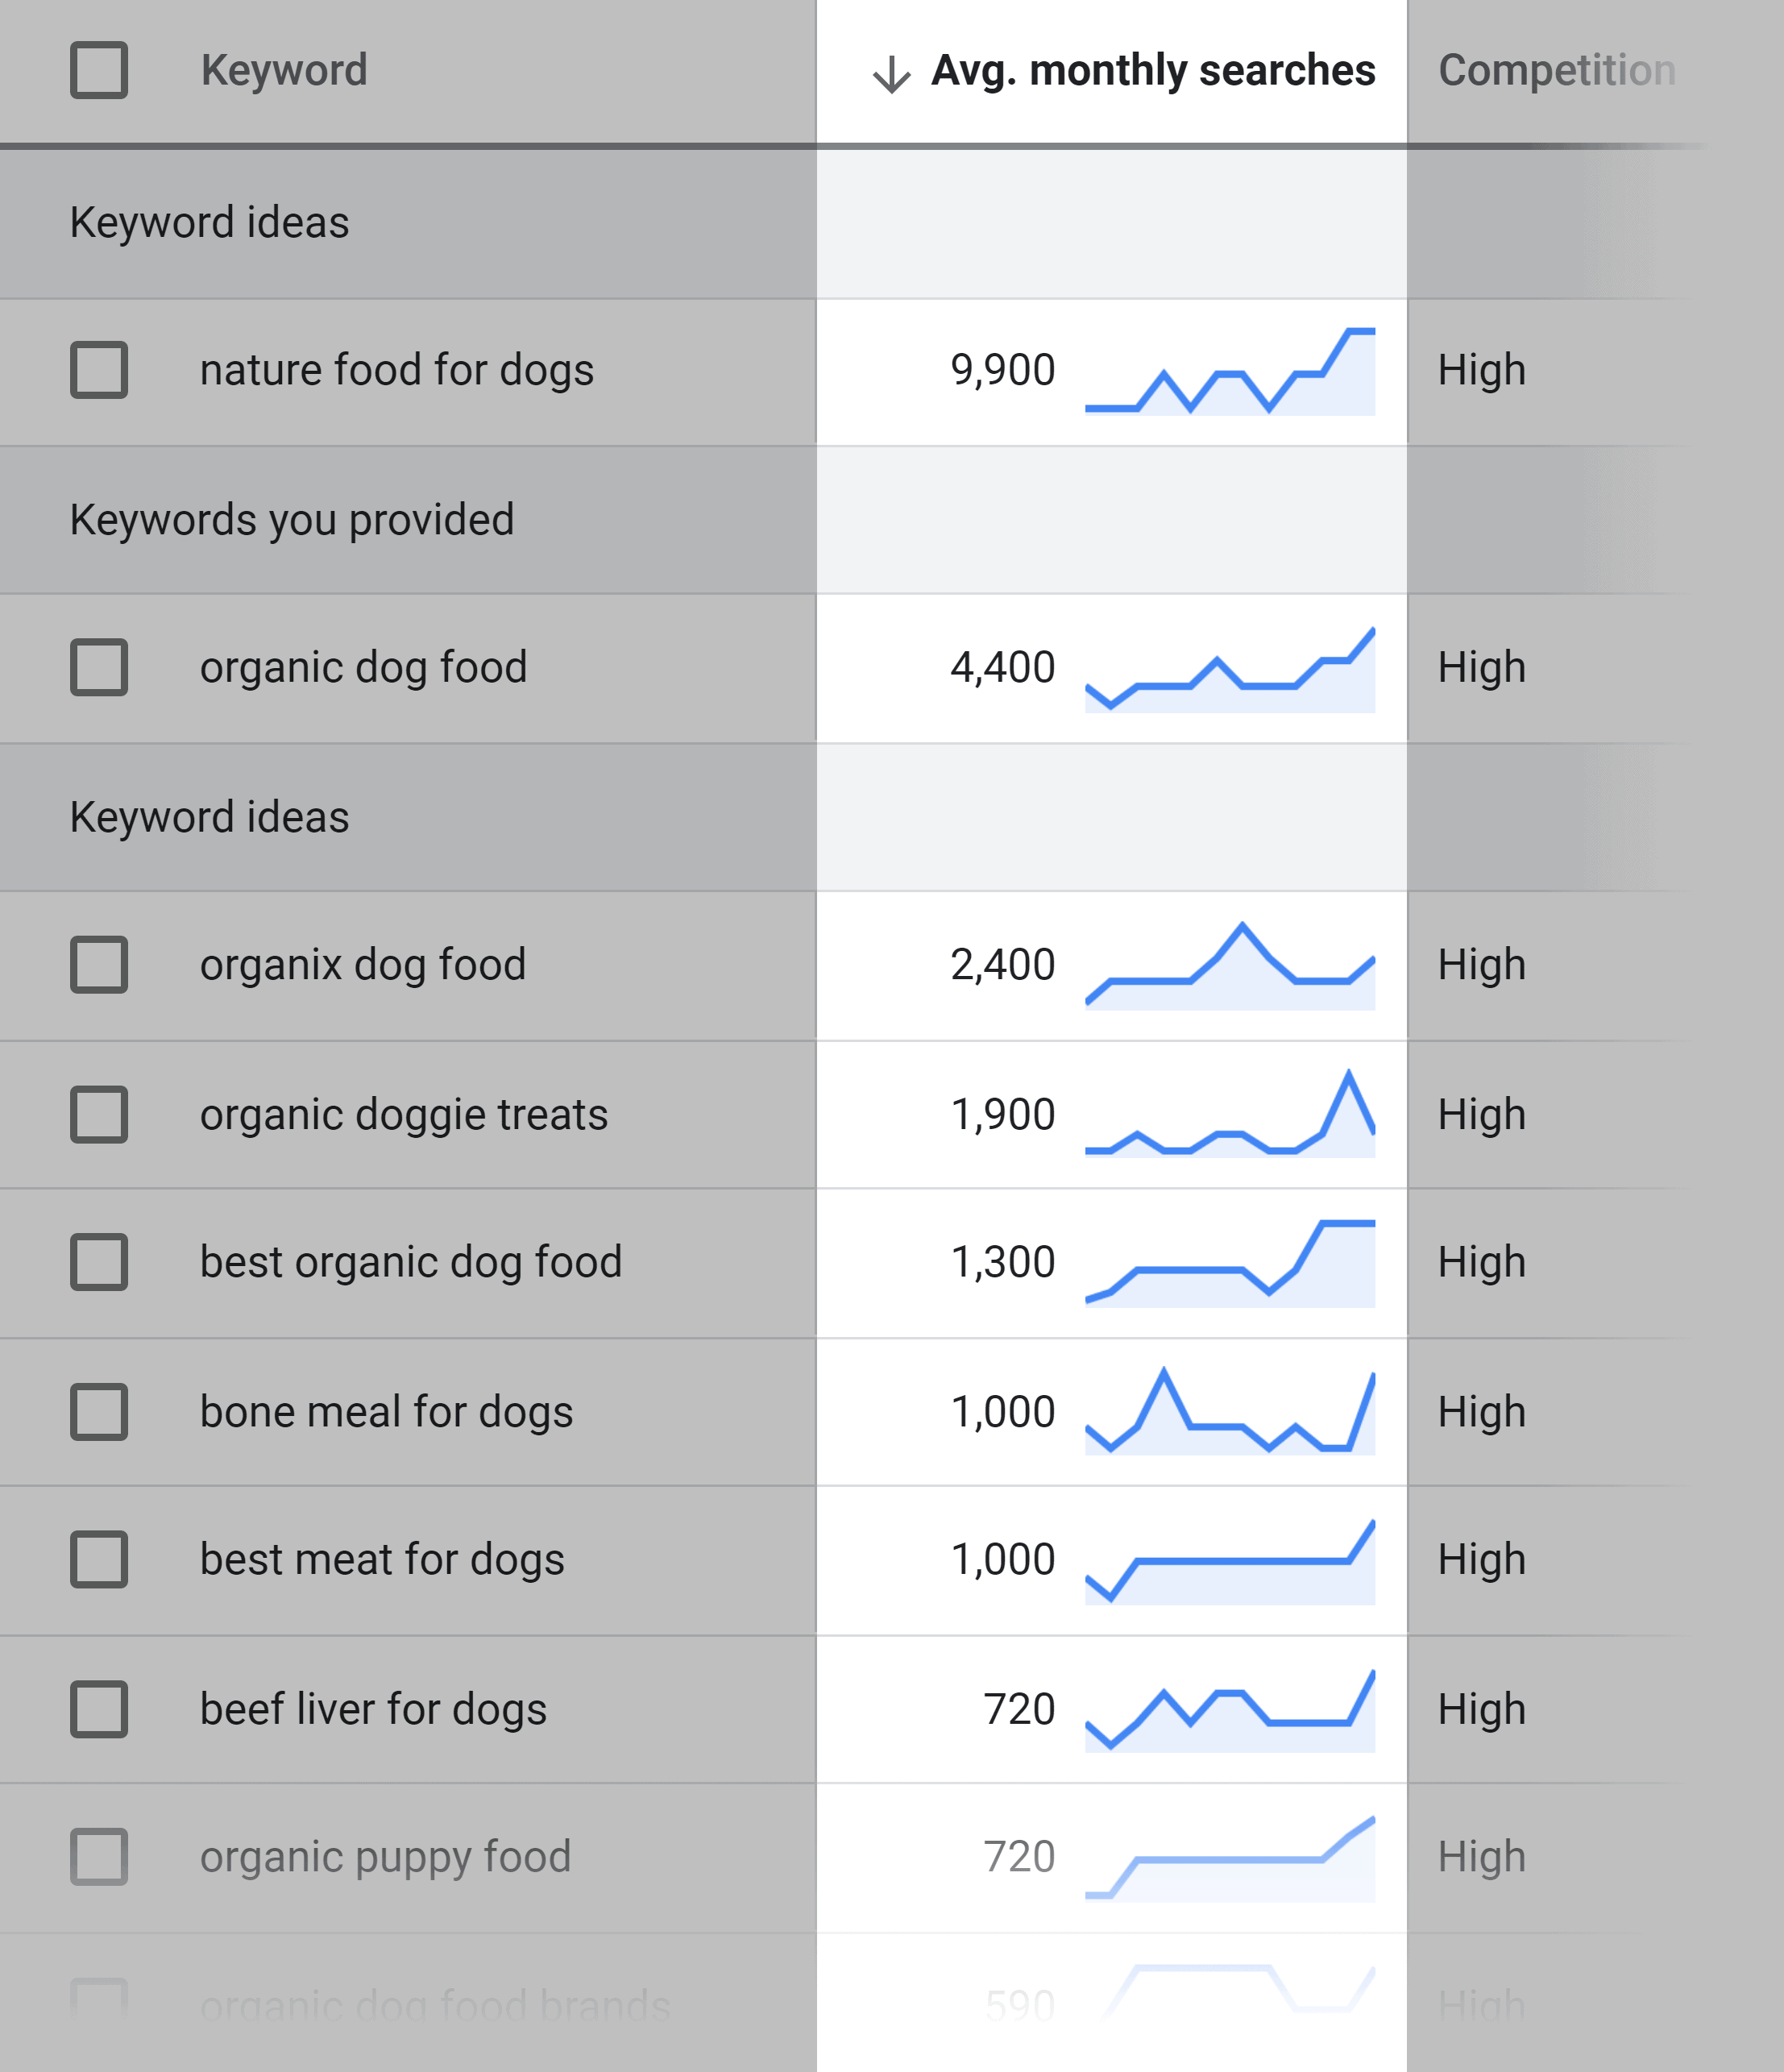 Google Keyword Planner – Average monthly searches